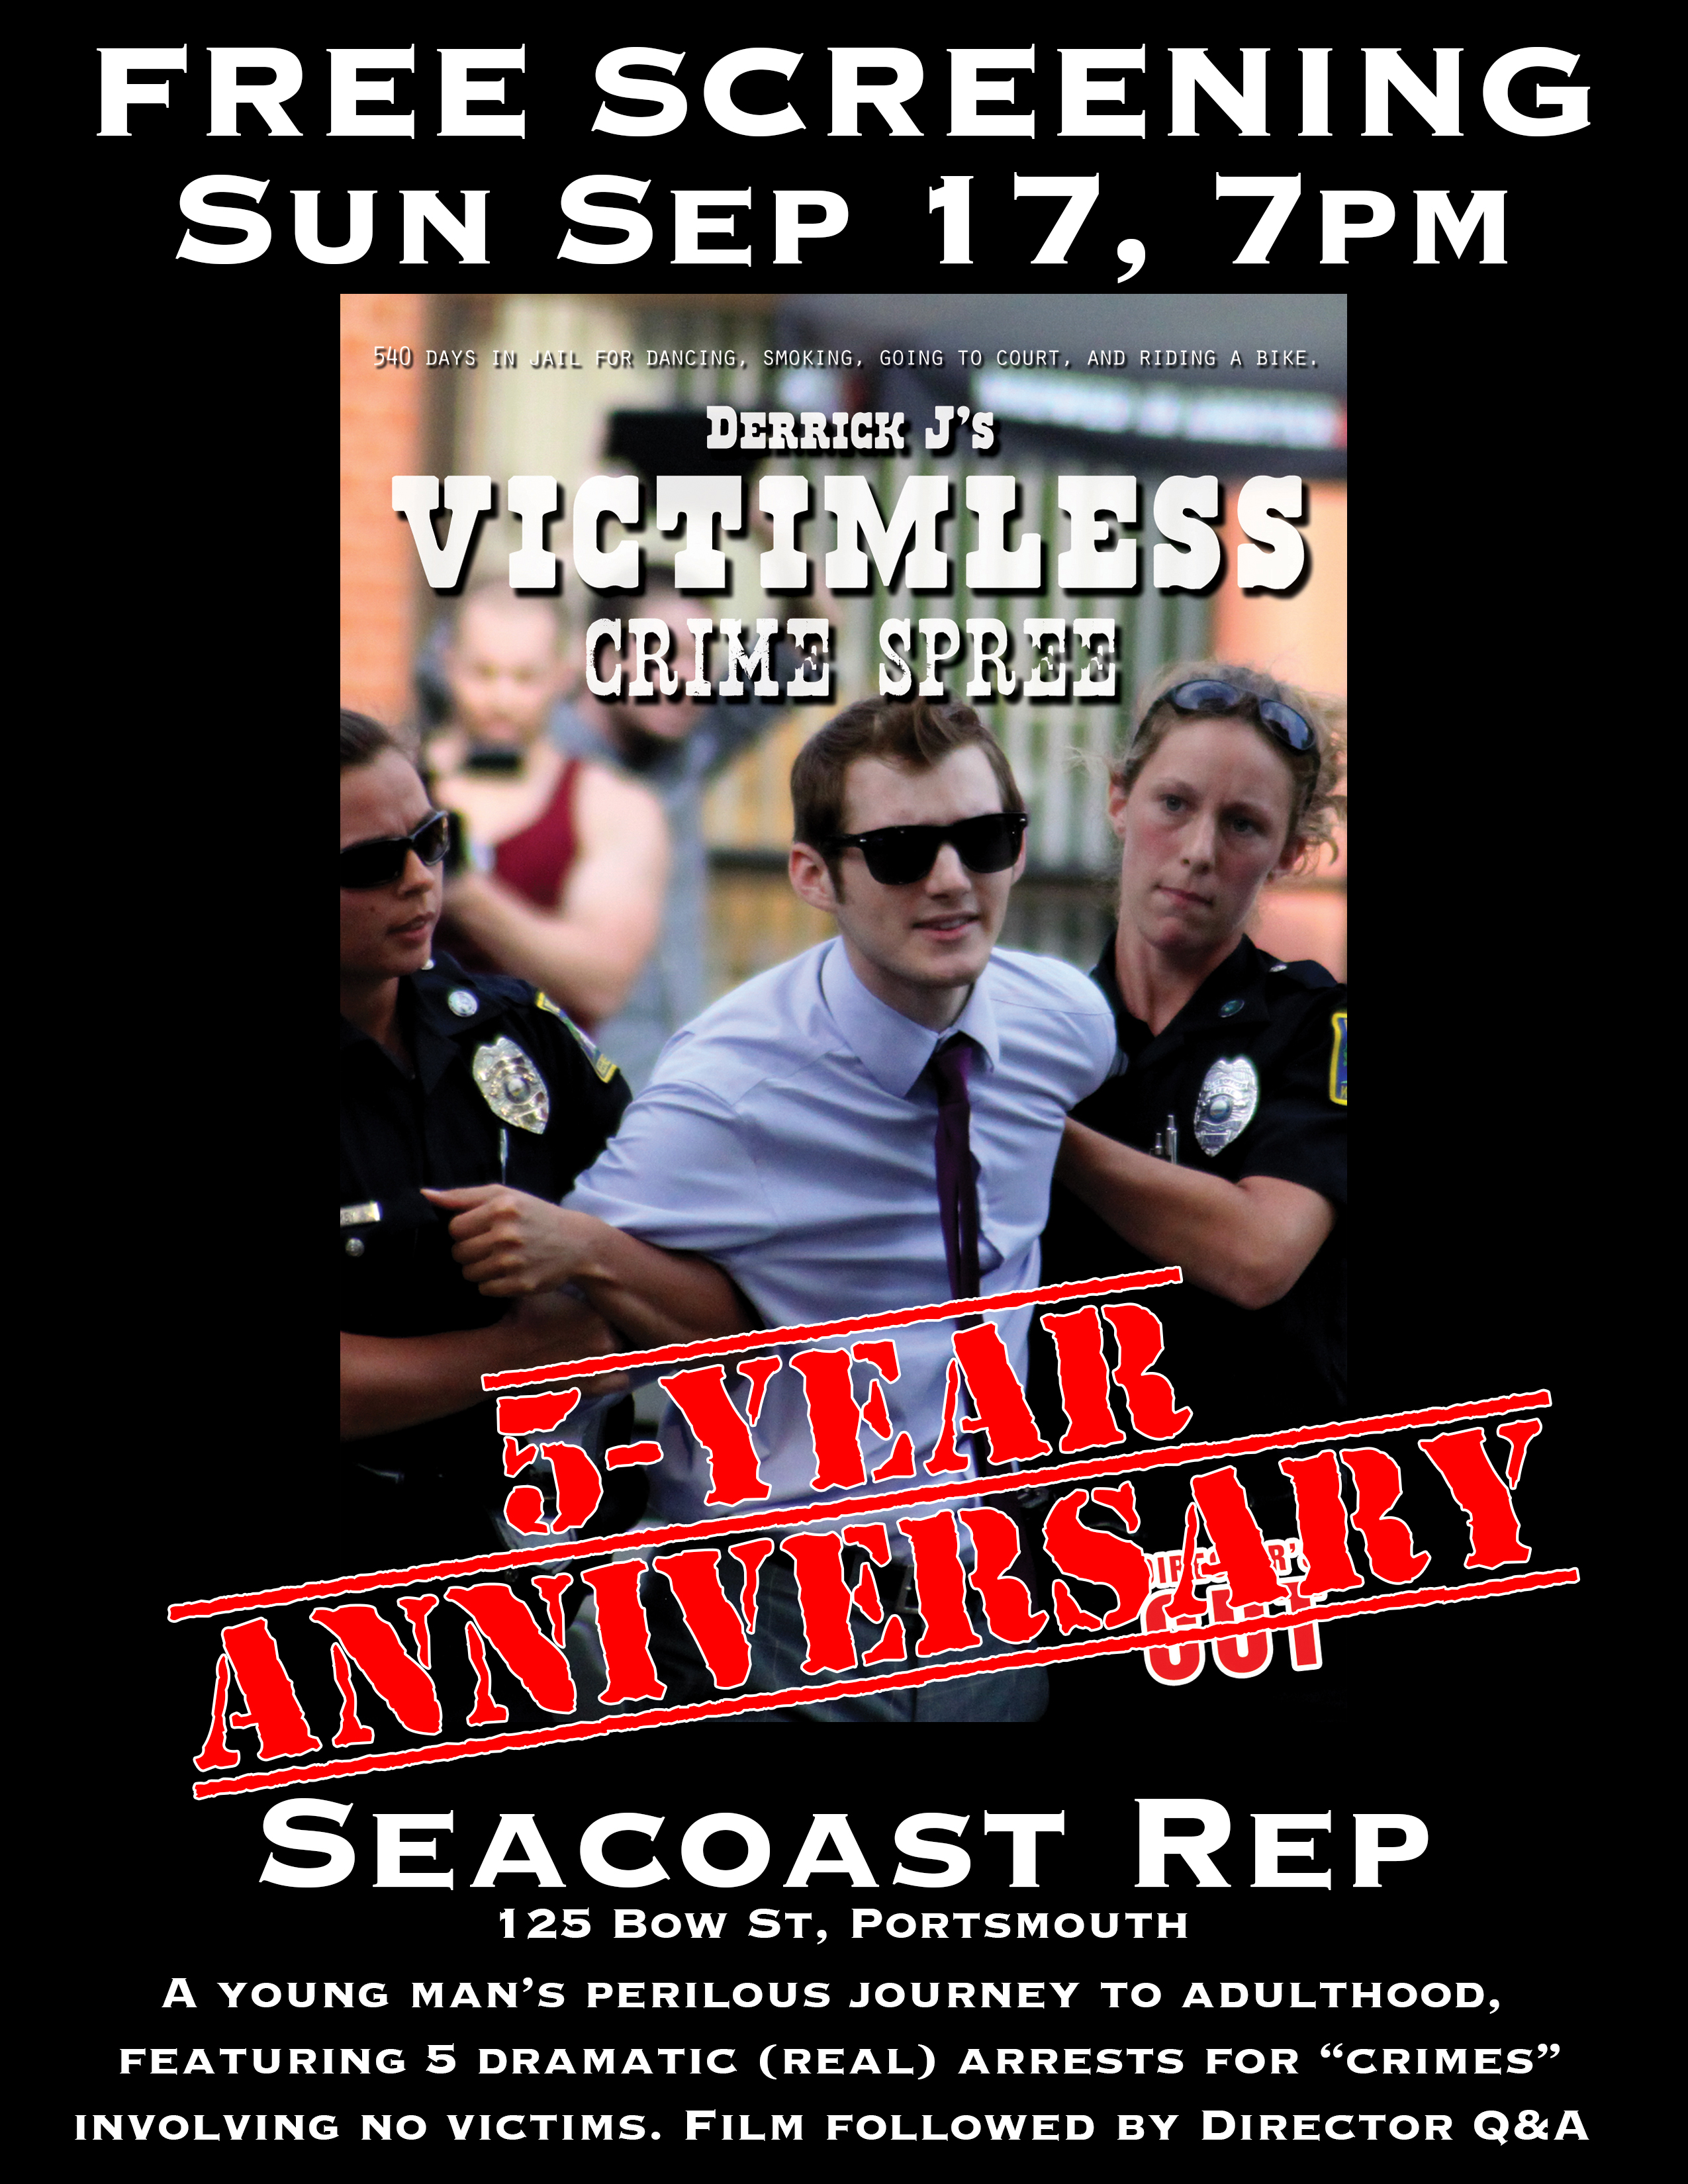 Victimless Crime Spree Screening Poster